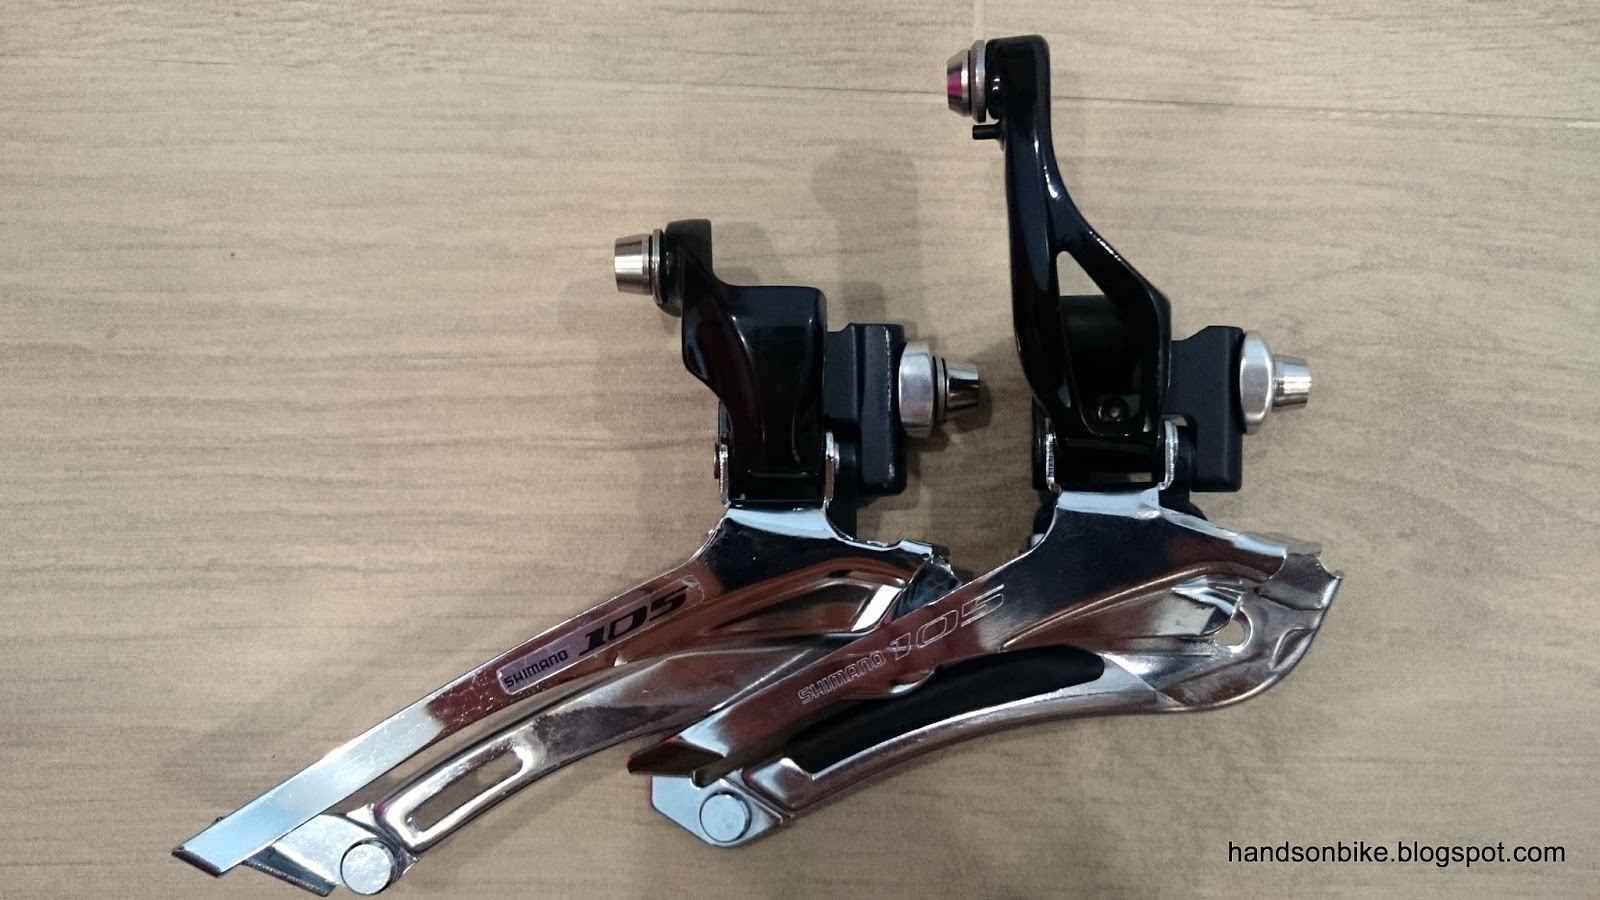 Hands On Bike Shimano 105 5800 Vs 5700 Rear Derailleur And Front Groupset New In Box Fd The Left Right Both Are Brazed Type Not Clamp Band As Shown Here They Look Very Different